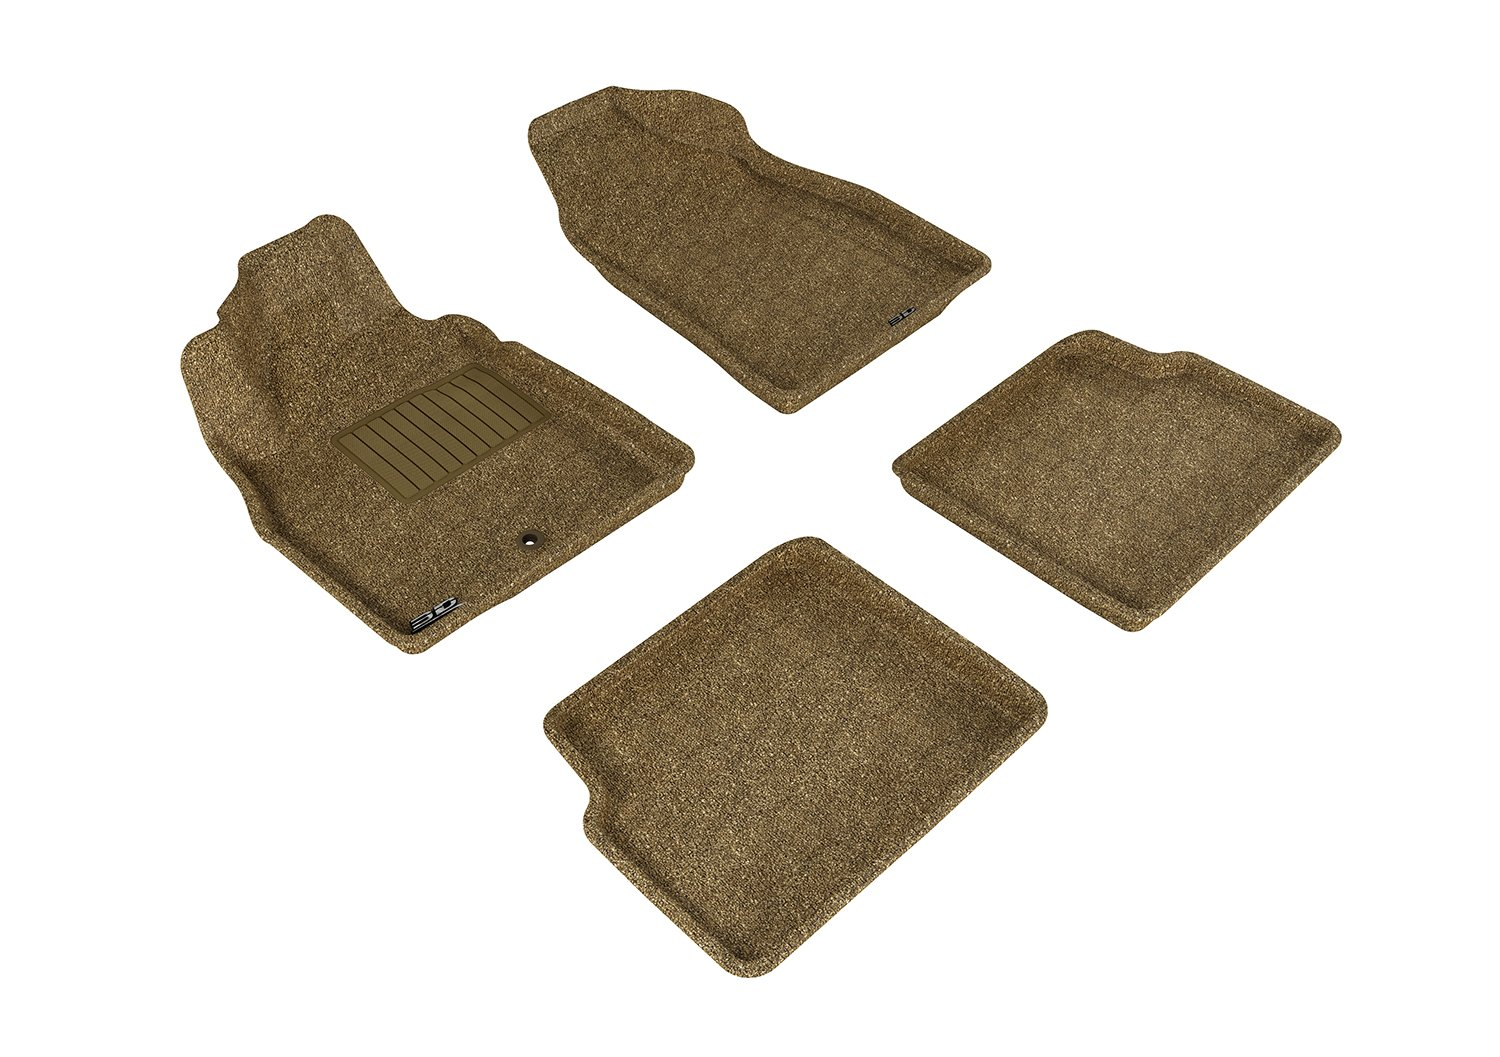 L1CH02122202 Classic Carpet 3D MAXpider Second Row Custom Fit All-Weather Floor Mat for Select Chevrolet HHR Models Tan